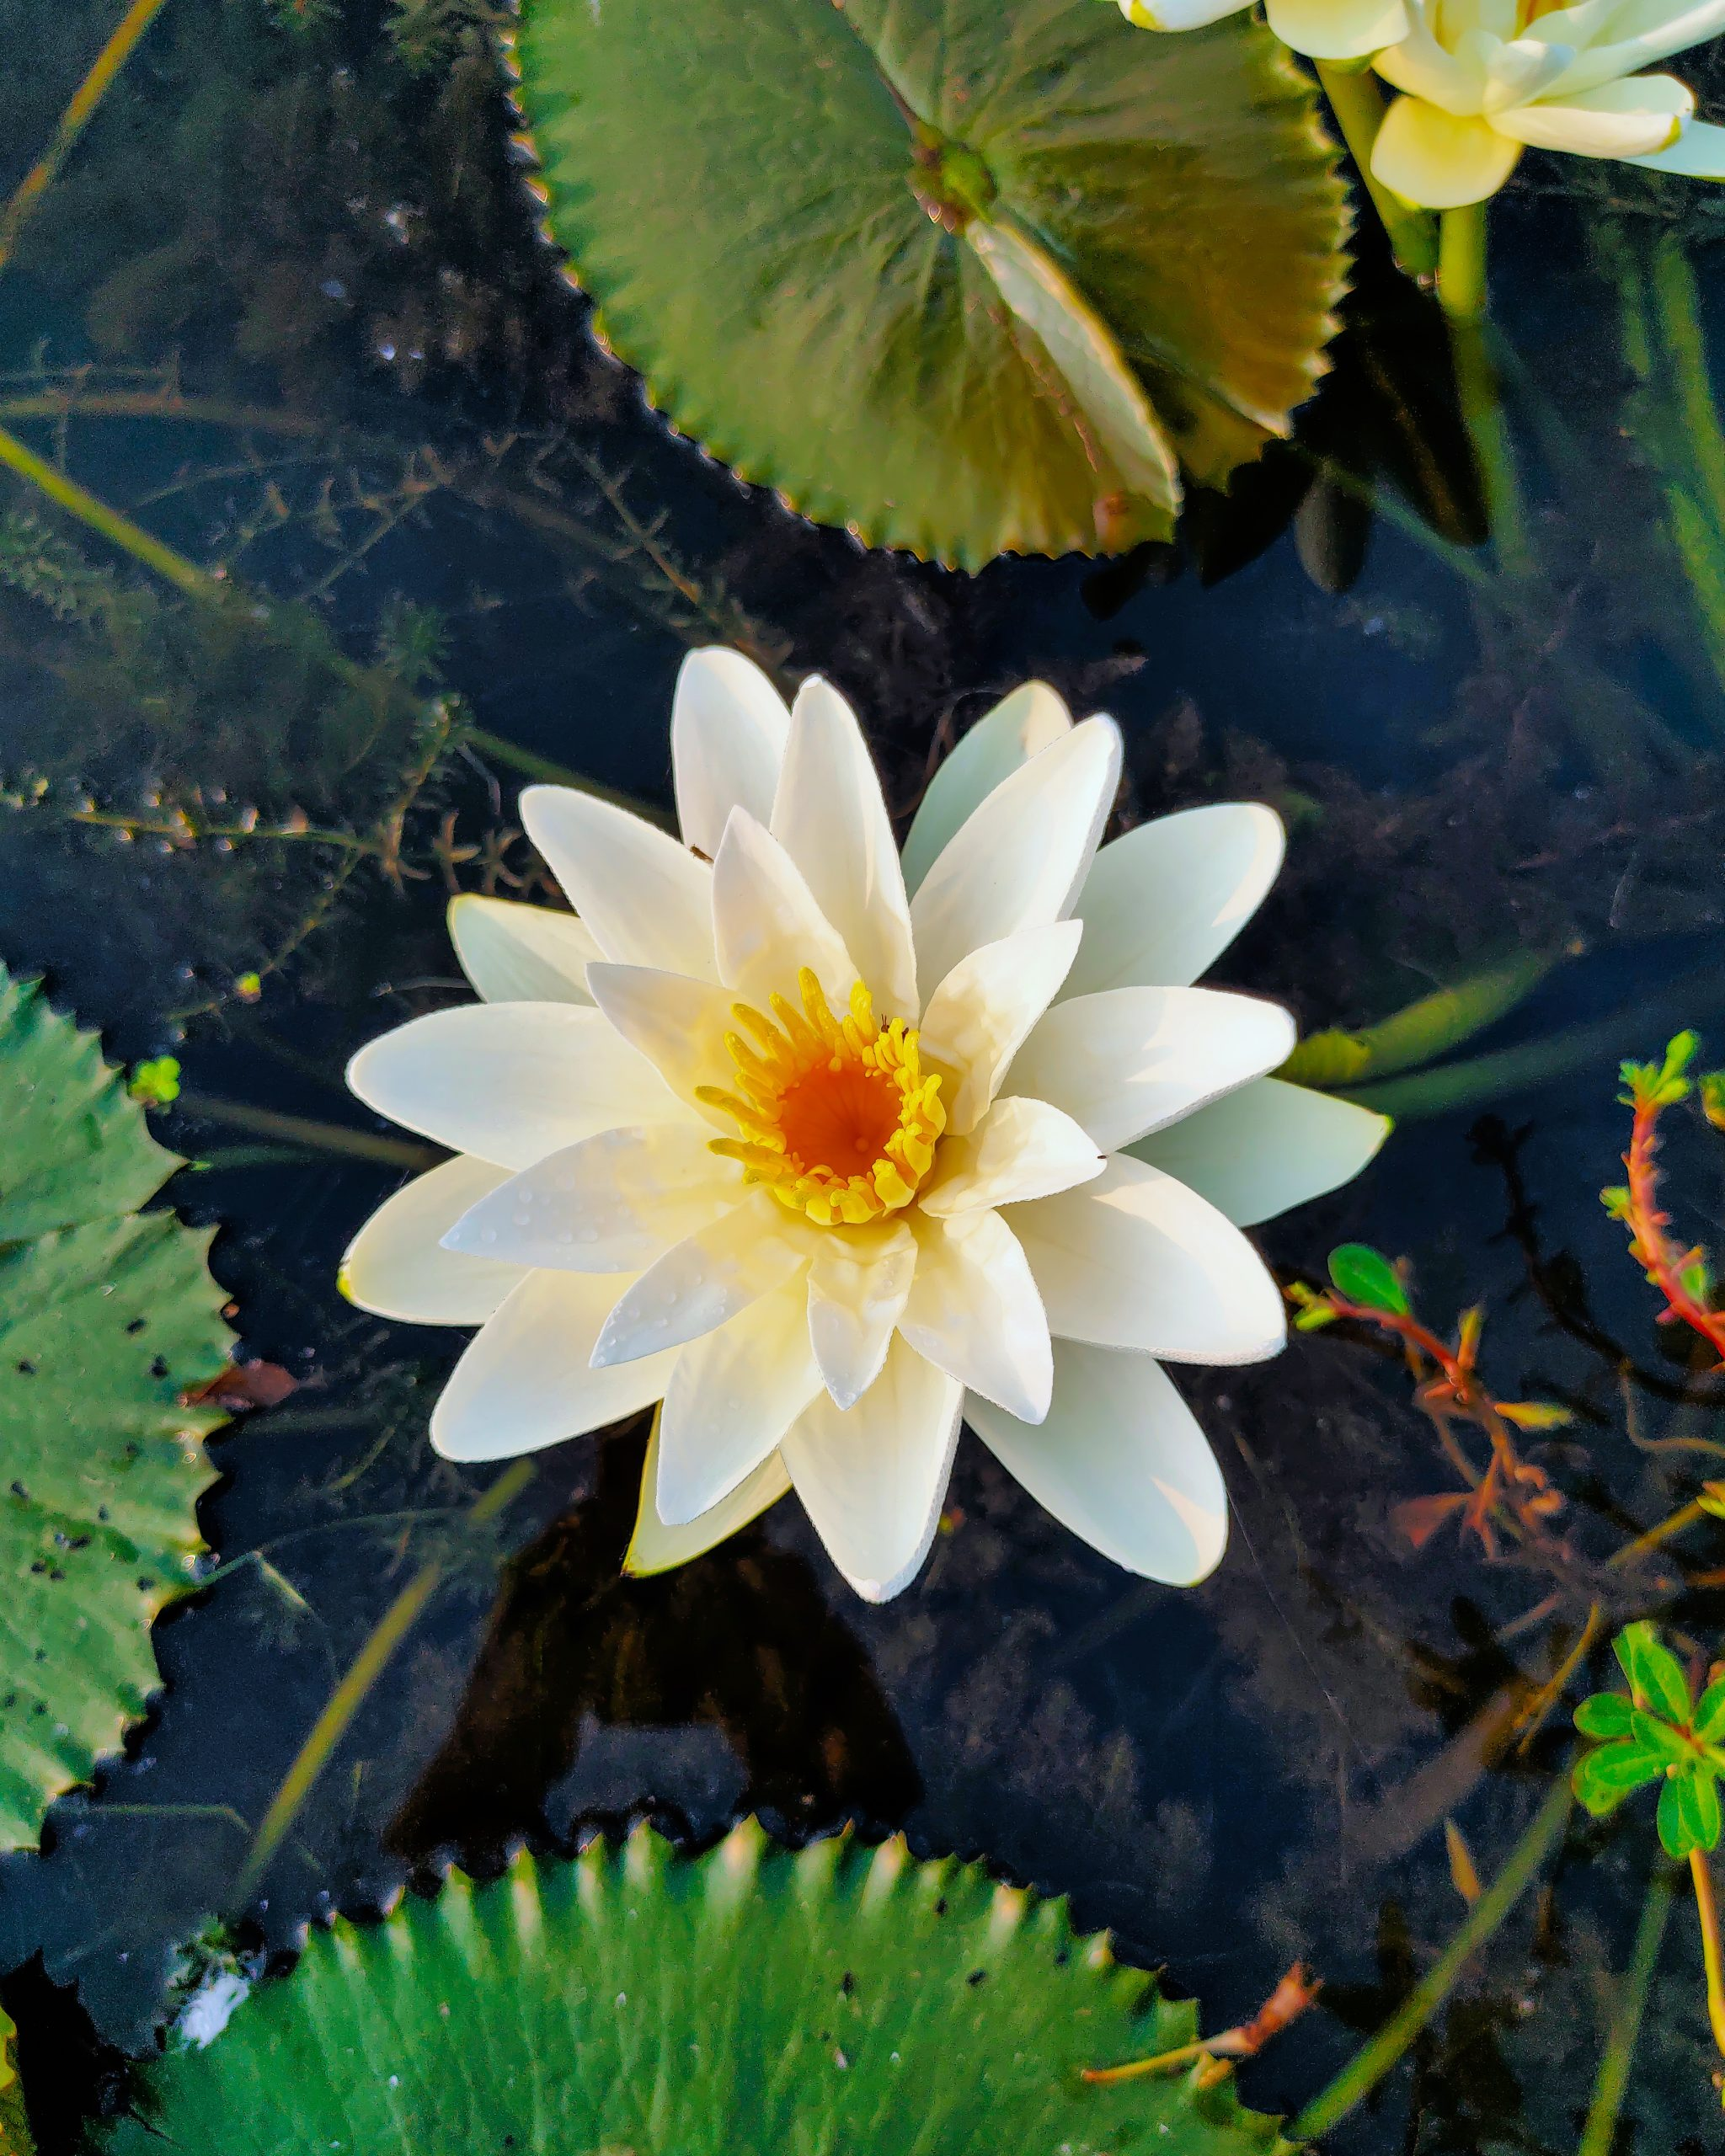 A water lily flower